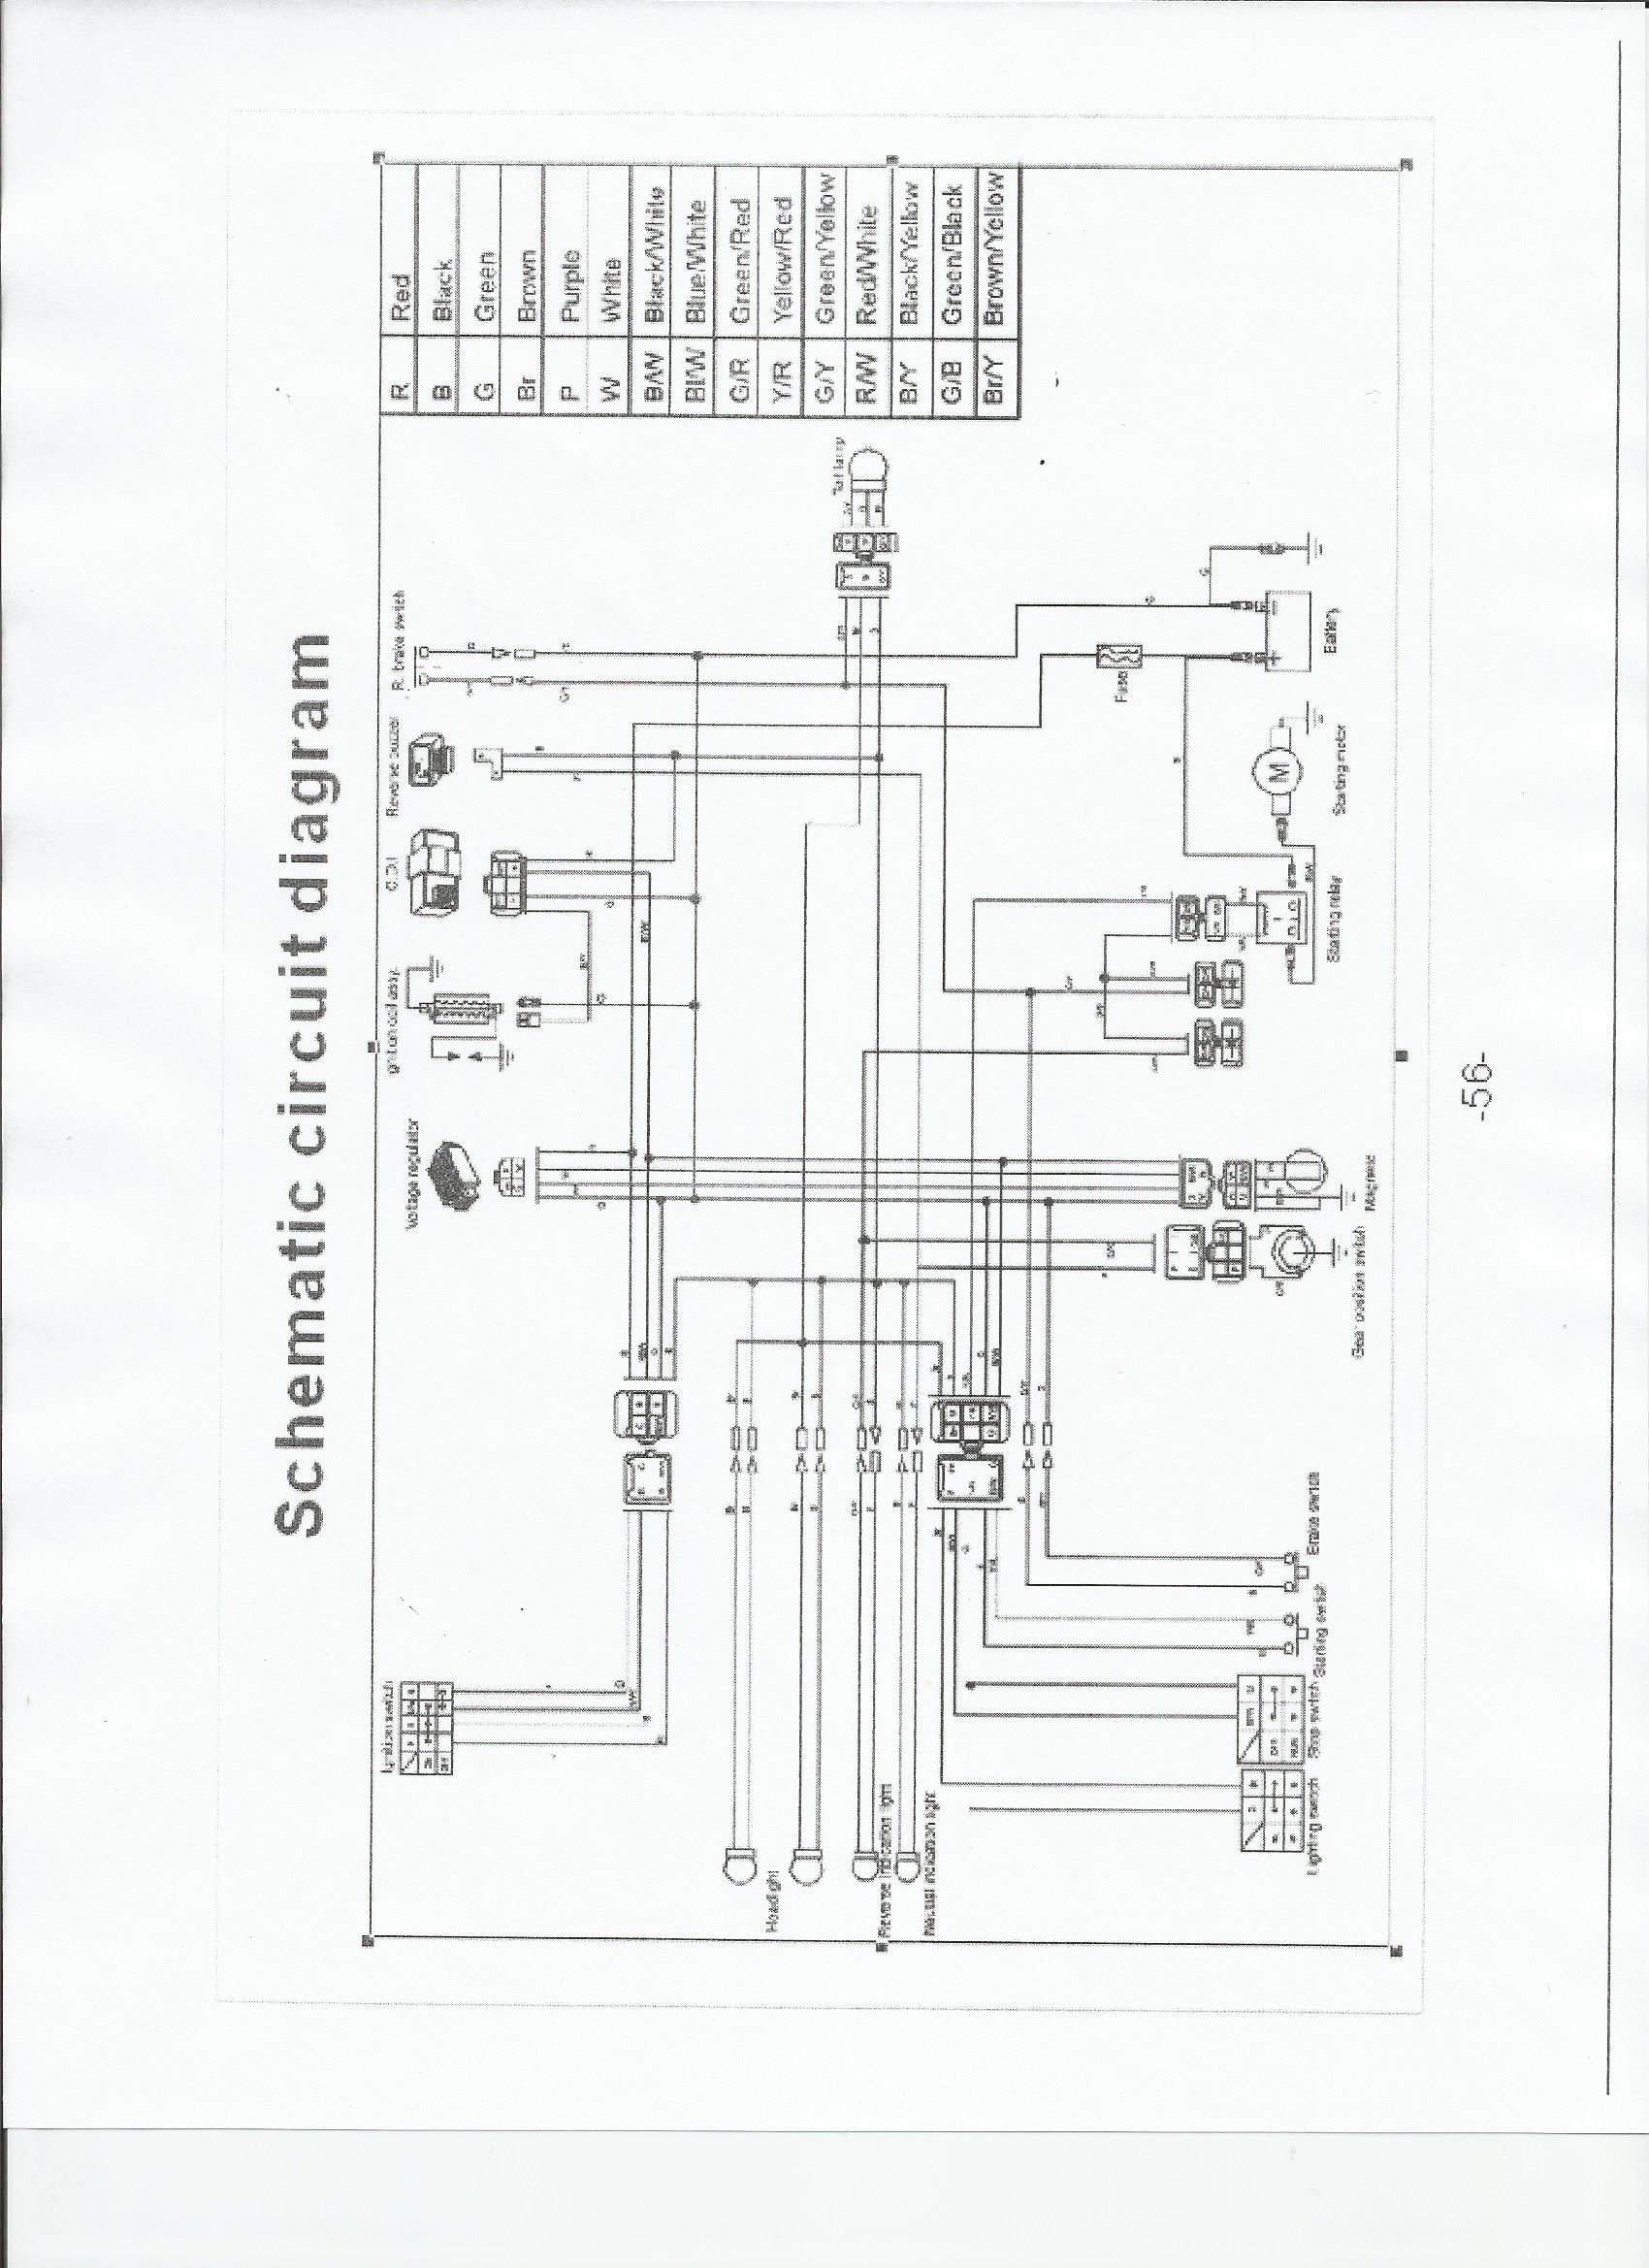 5446 Wiring Soild State Relays as well Chevrolet Hhr 2005 2011 Fuse Box Diagram likewise Basics Of Instrument Loop Diagrams also Beede Tach Settings Cummins Flywheel Tooth Count further What Is An E12 Or E26 Light Bulb. on wiring diagram